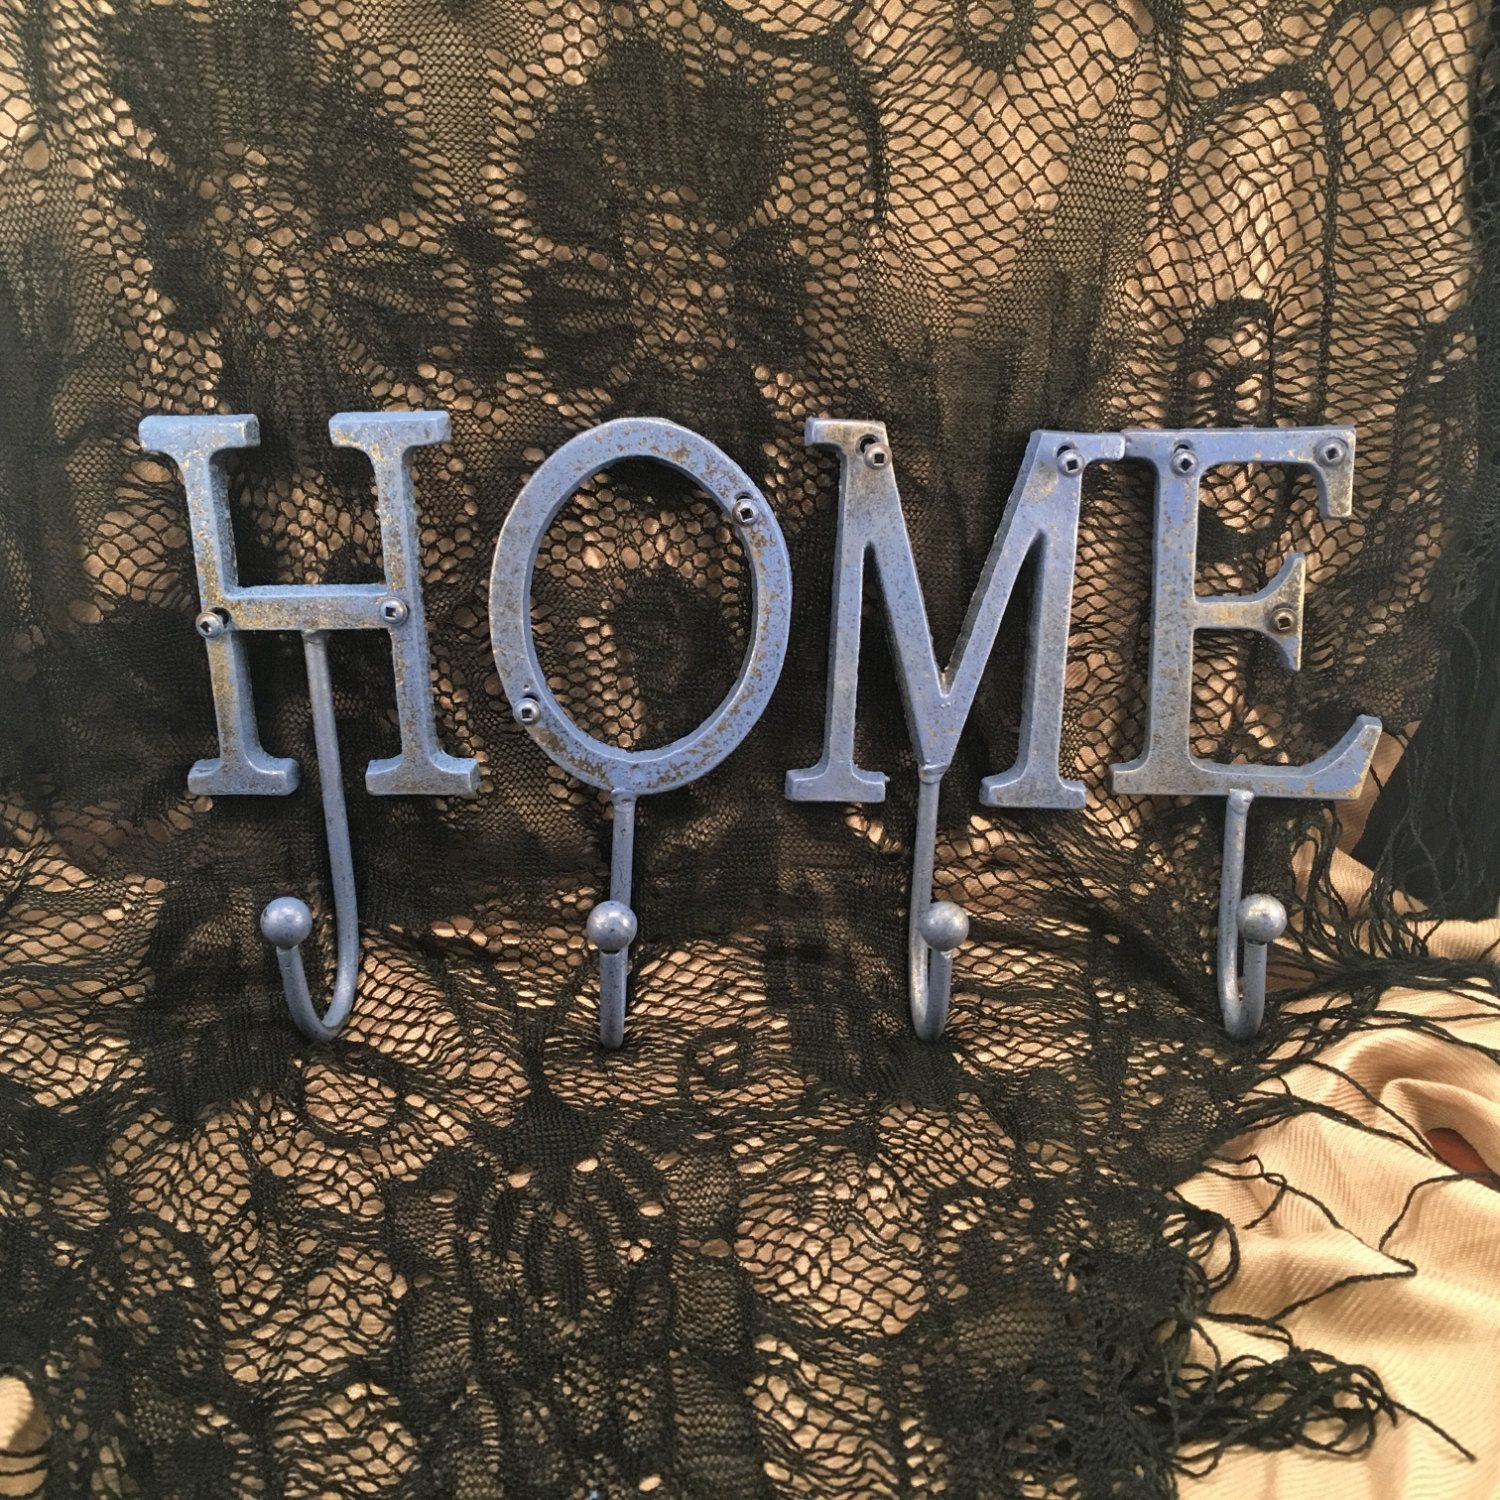 Hammered Metal Letters Cast Iron Wall Towel Hooks 'home' Decorative Metal Letters Hook